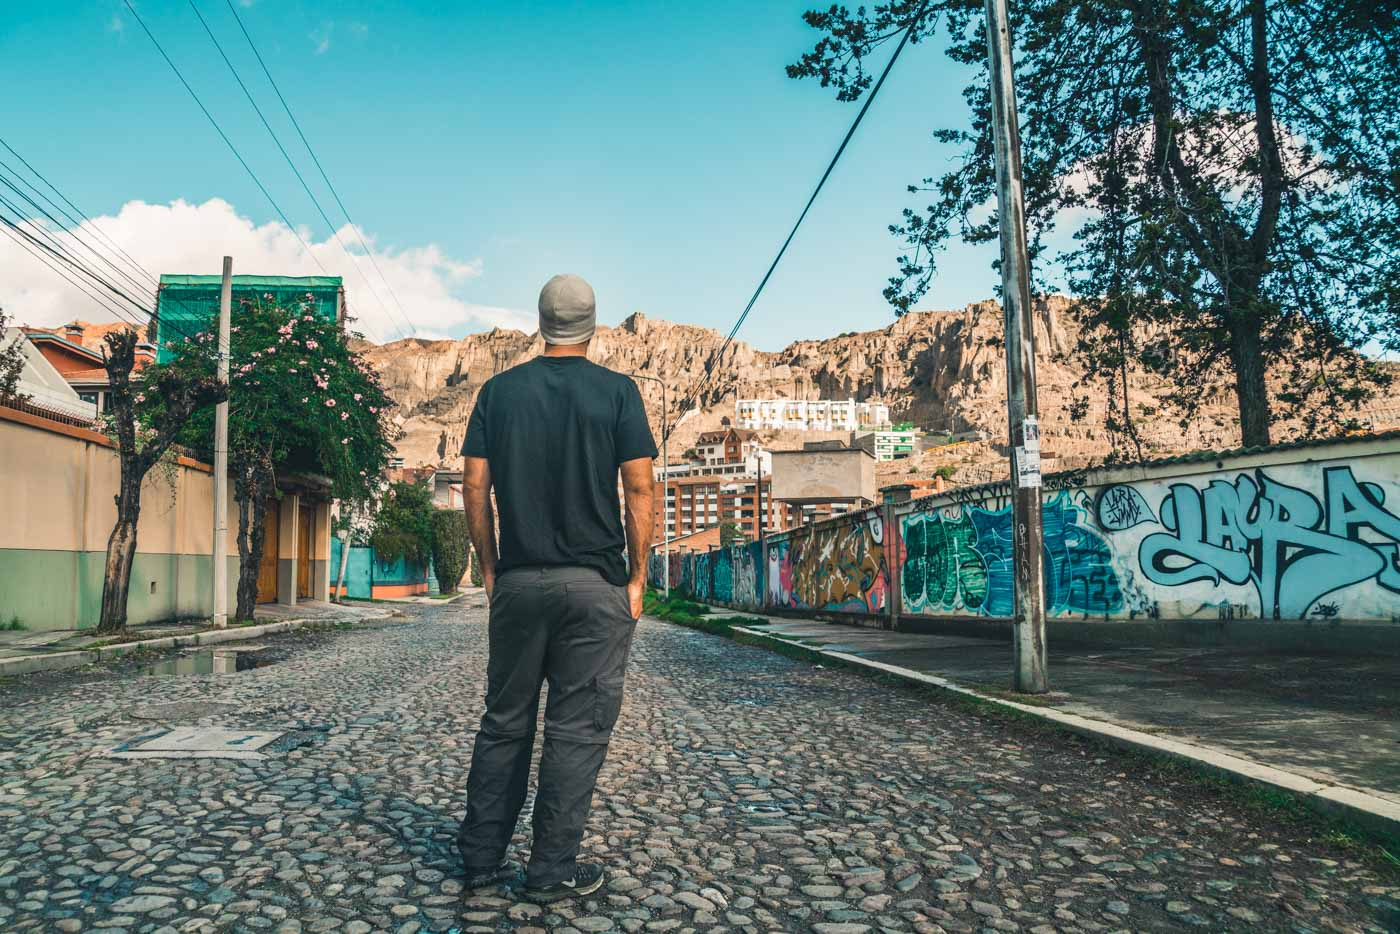 Max wearing his Unbound t-shirt while exploring La Paz, Bolivia